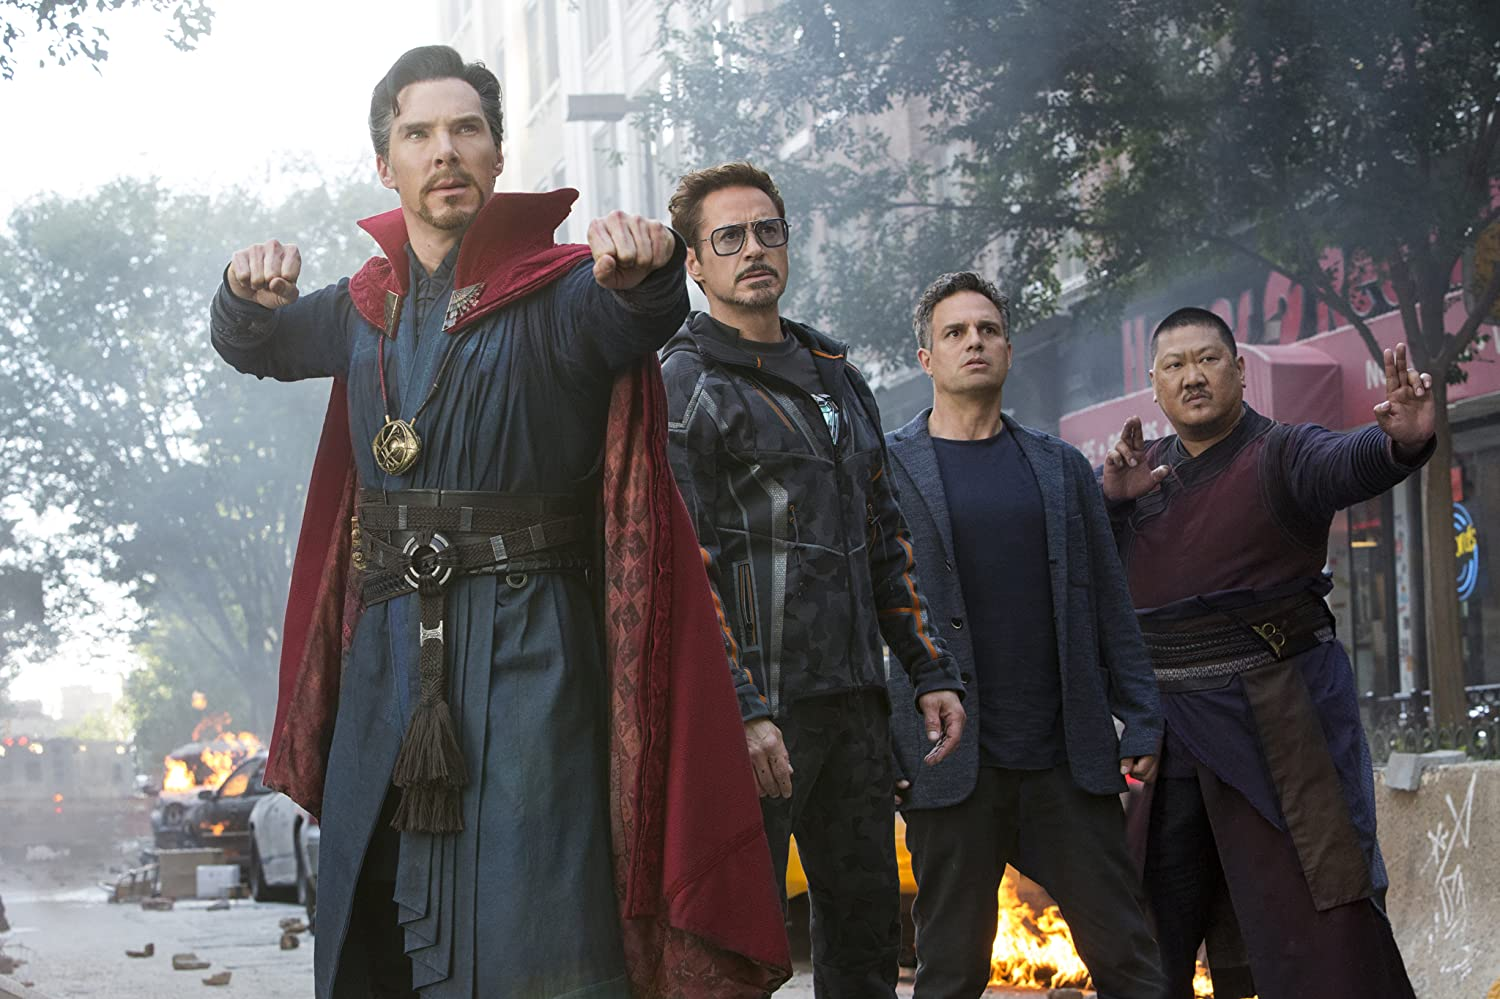 Robert Downey Jr., Mark Ruffalo, Benedict Wong, and Benedict Cumberbatch in Avengers: Infinity War (2018)